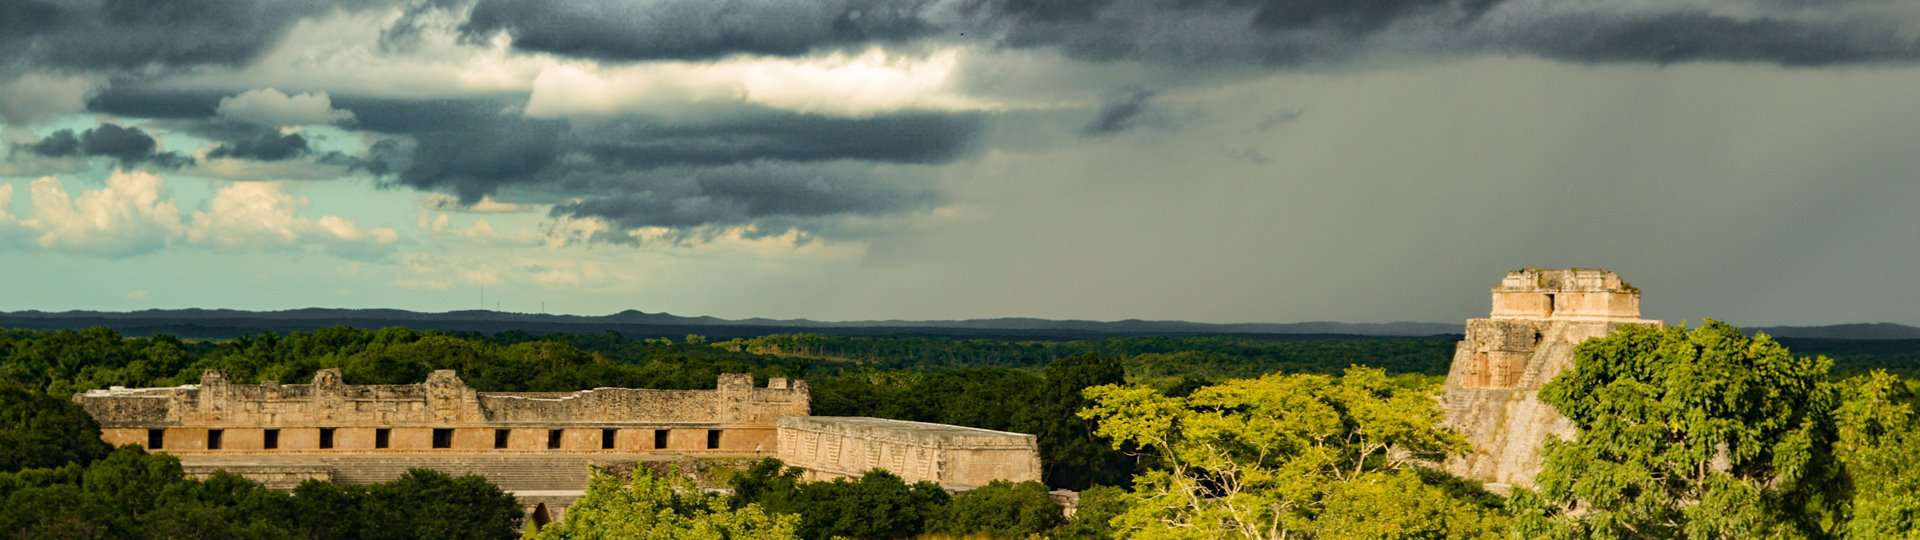 The Mayan site of Uxmal on the Yucatán peninsular, Mexico.